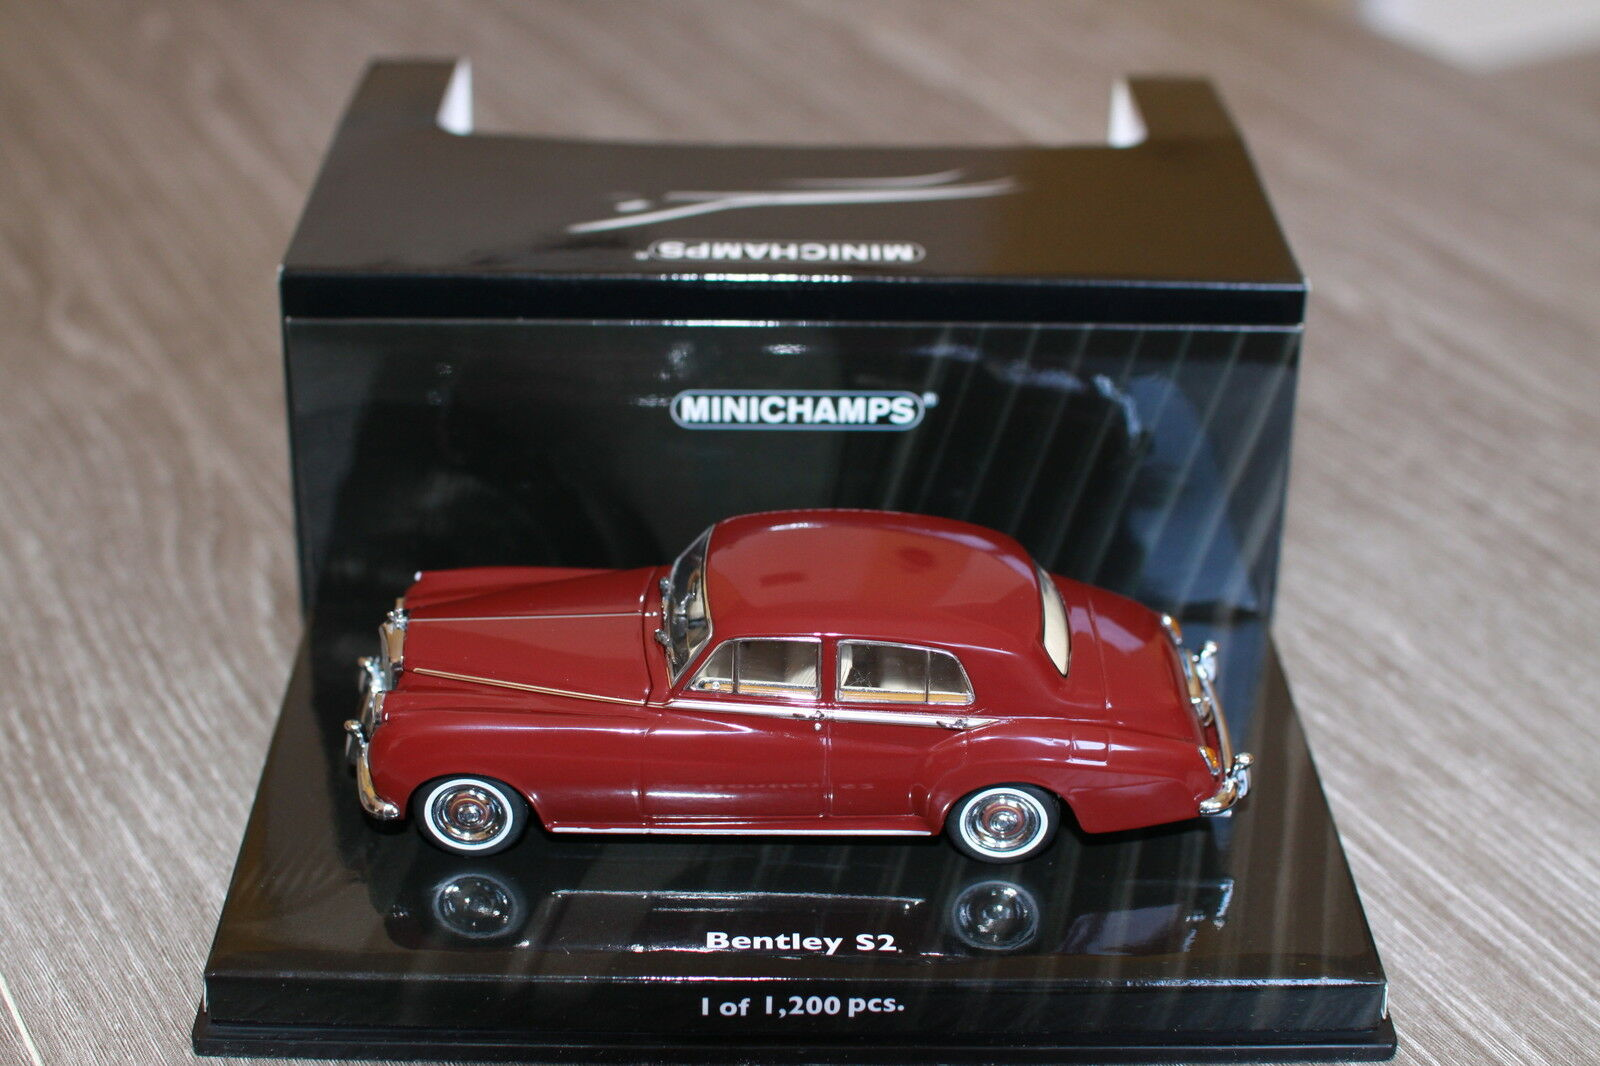 BENTLEY S2 STANDARD SALOON 1960 rouge MINICHAMPS 436 139951 1 43 LIMITED EDITION